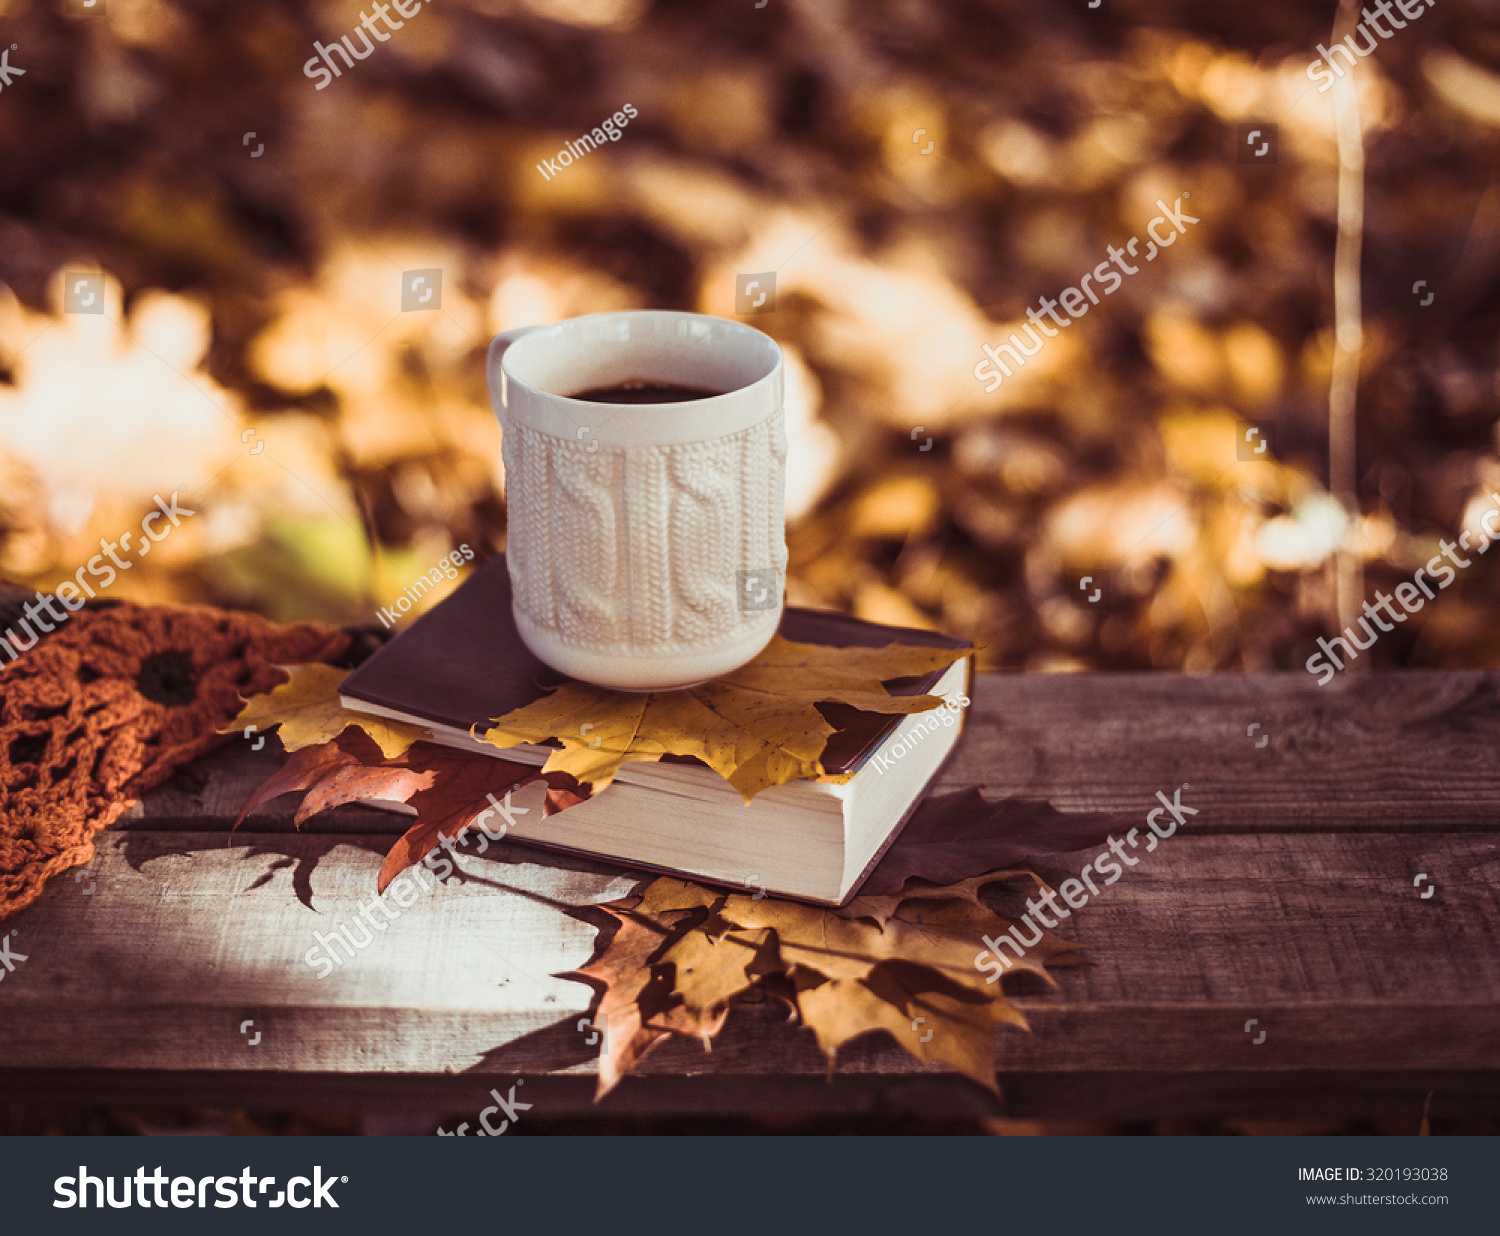 Coffee Art Livre Hot Coffee Red Book Autumn Leaves Stock Photo 320193038